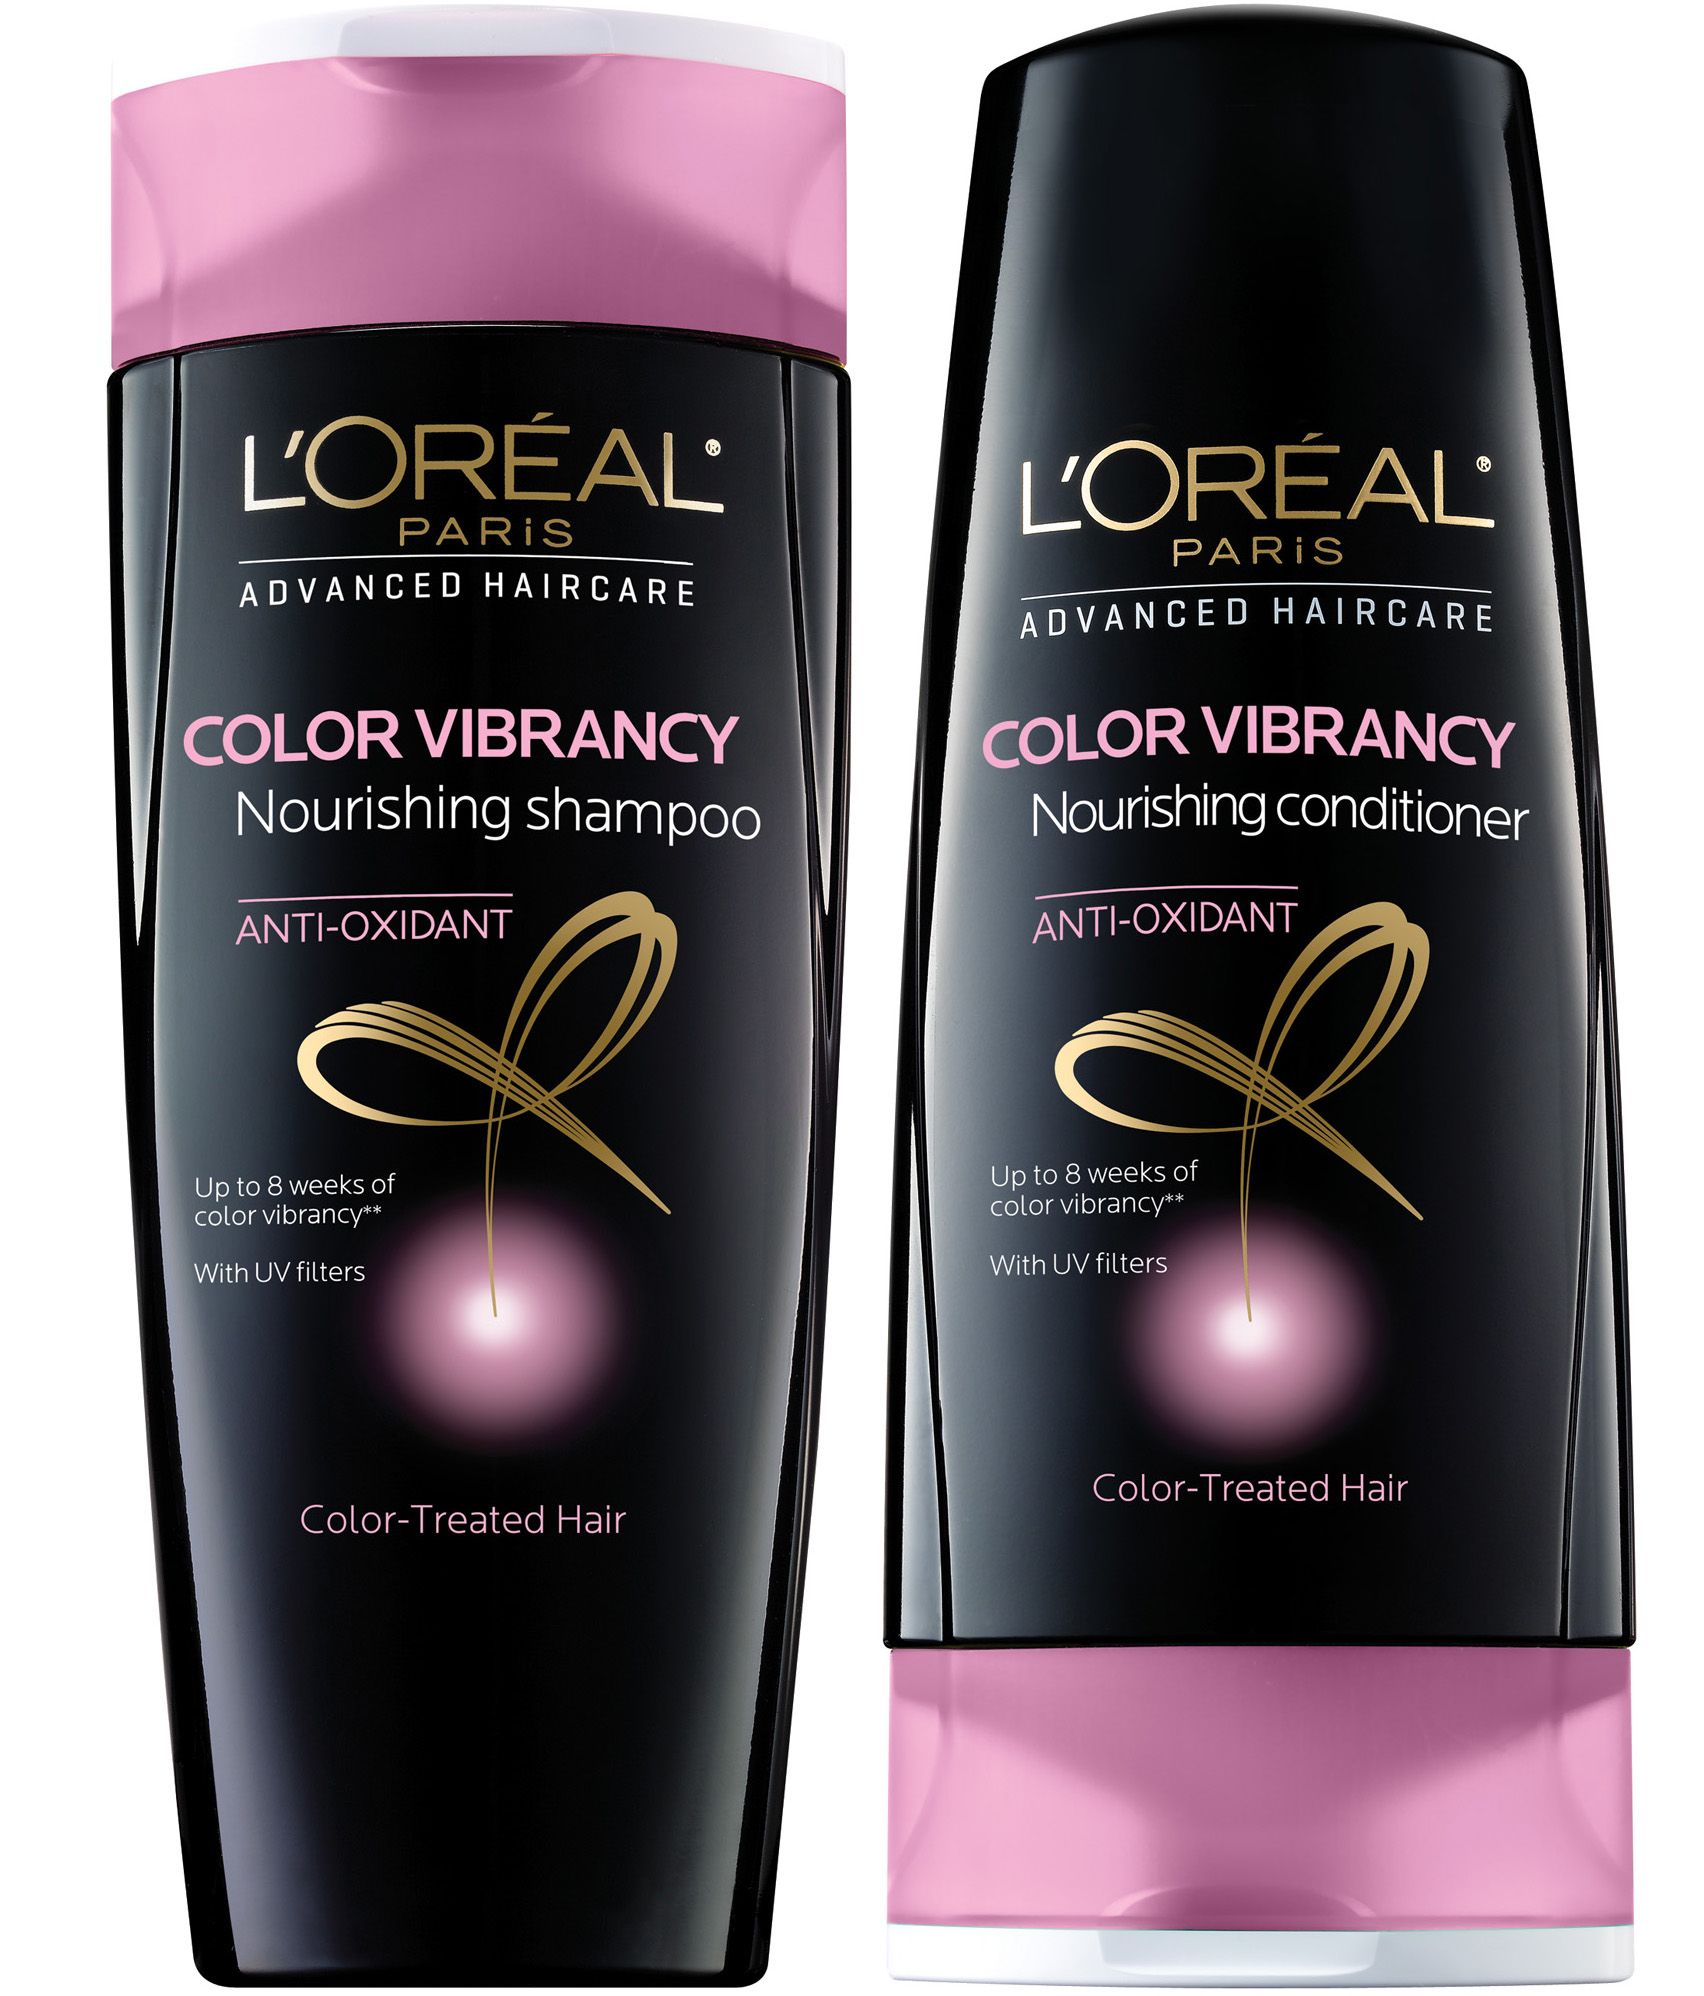 Free LOreal Paris Advanced Haircare Samples